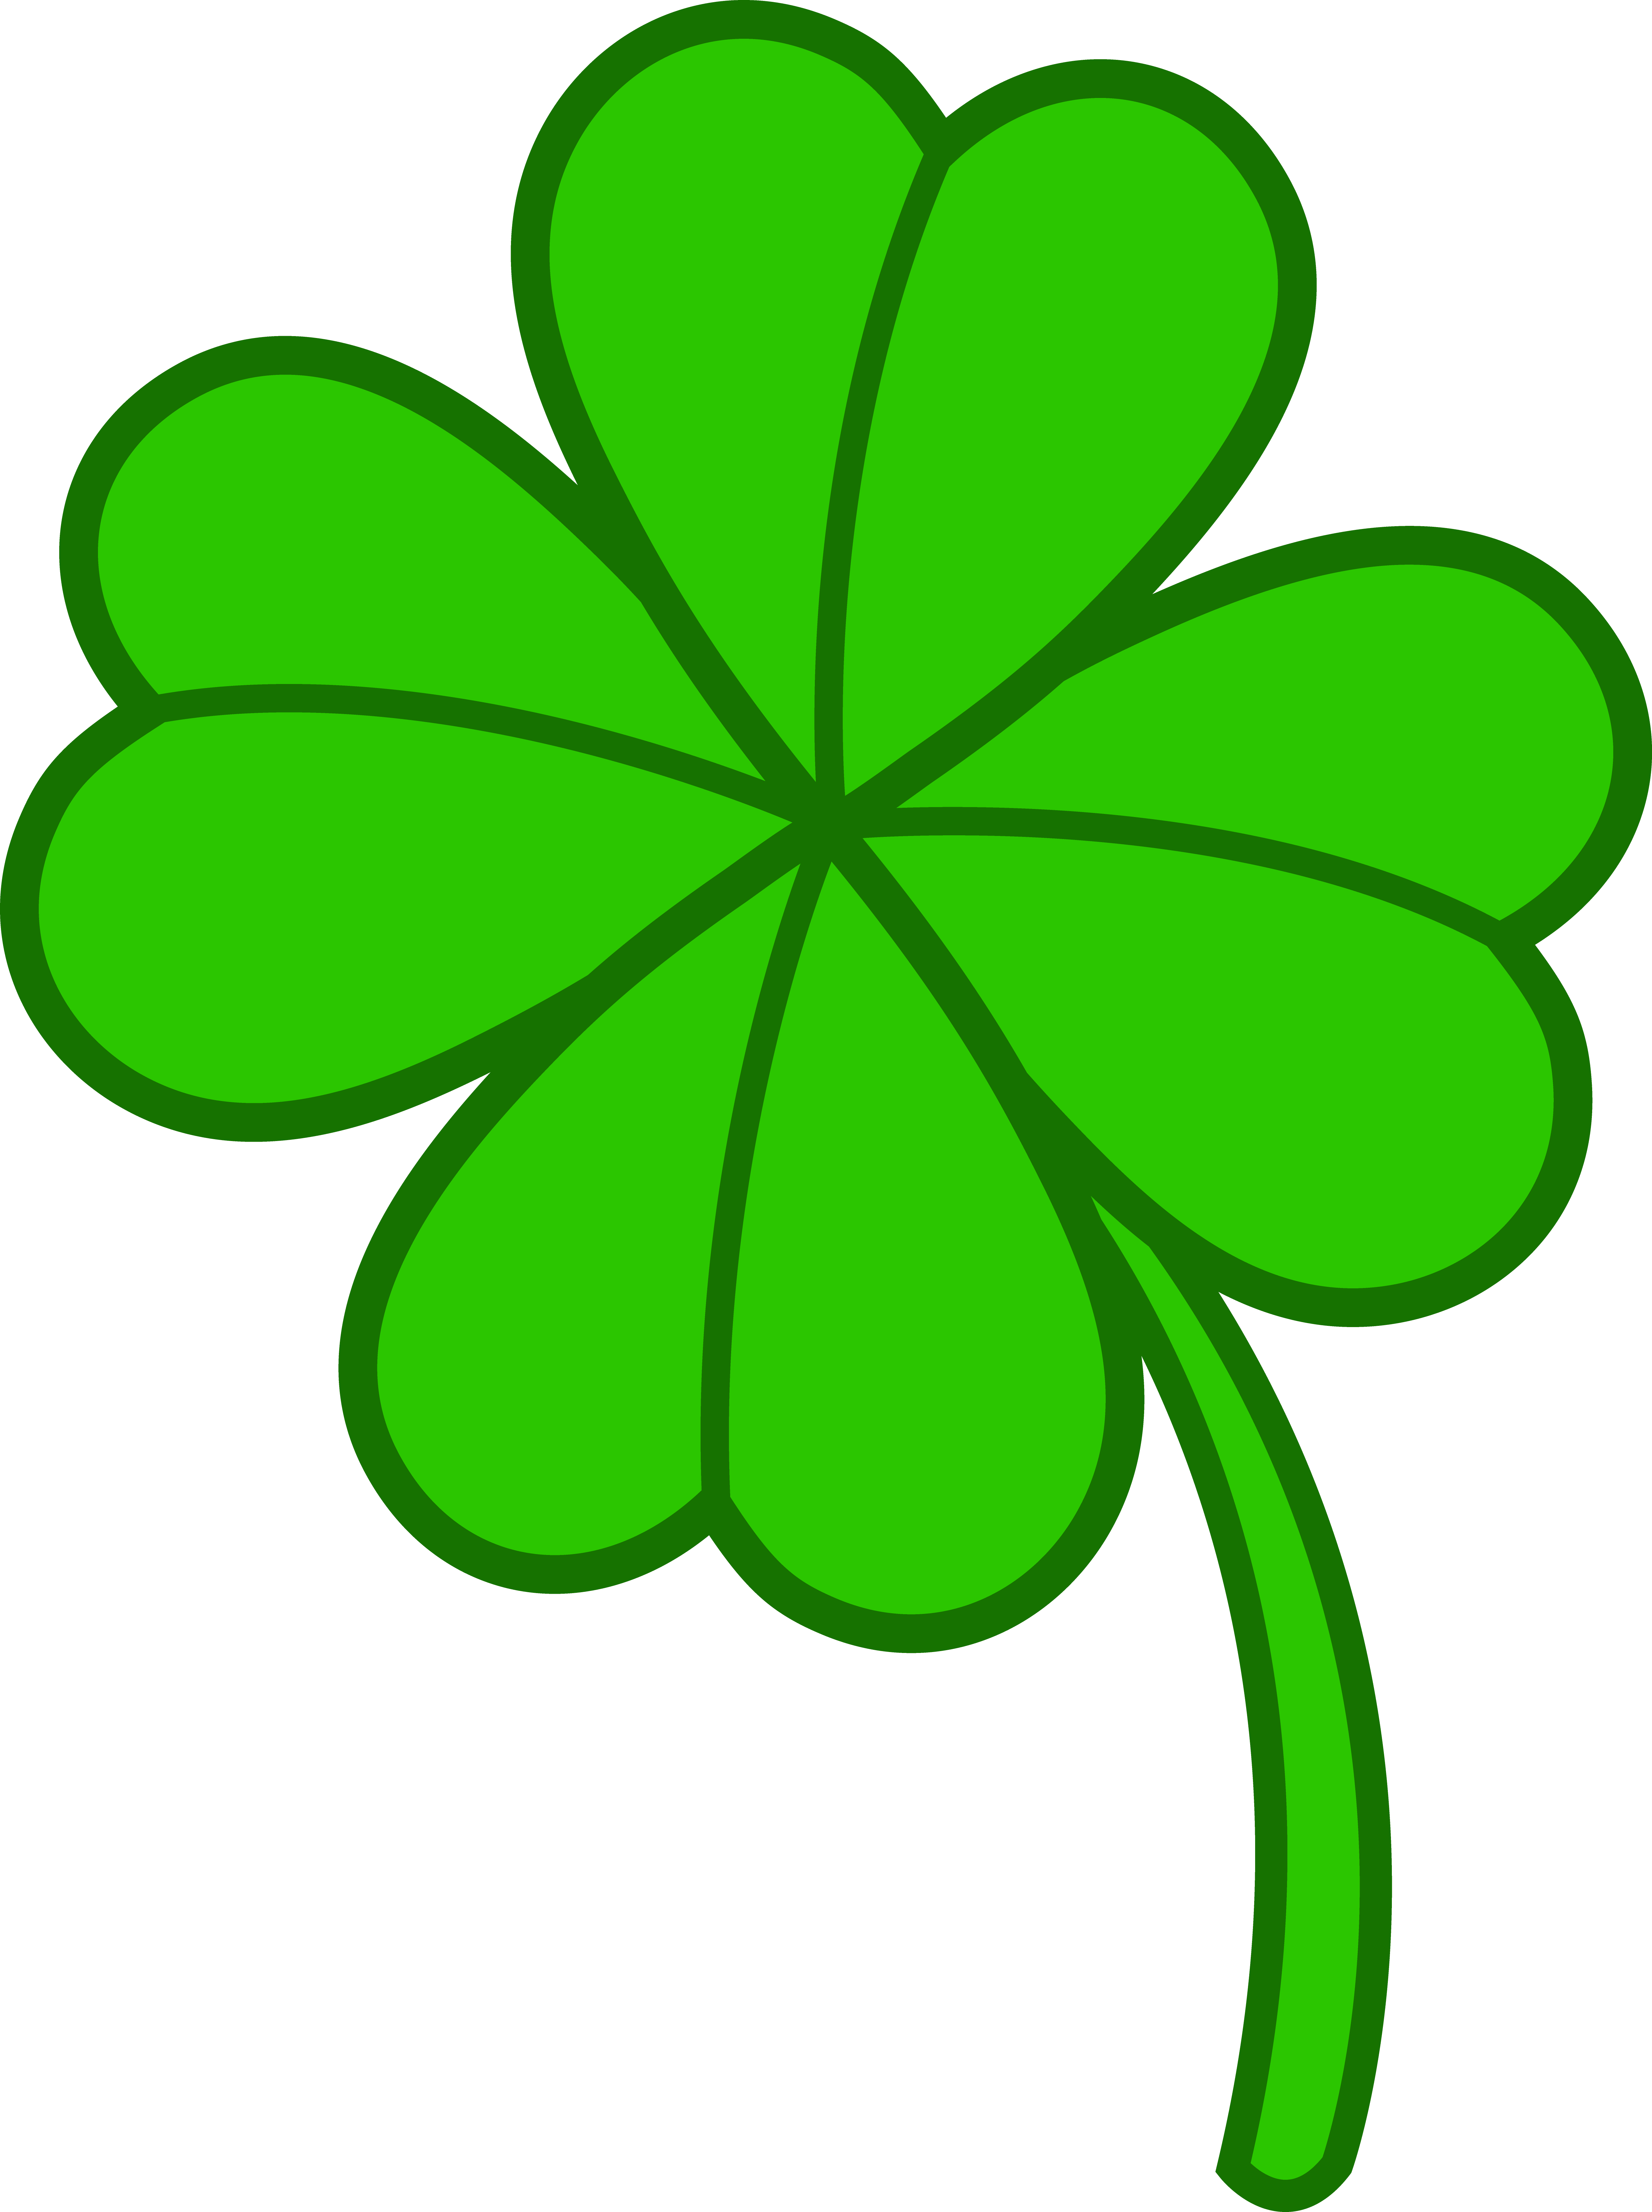 clip art freeuse download Four clipart object. Little leaf clover awesome